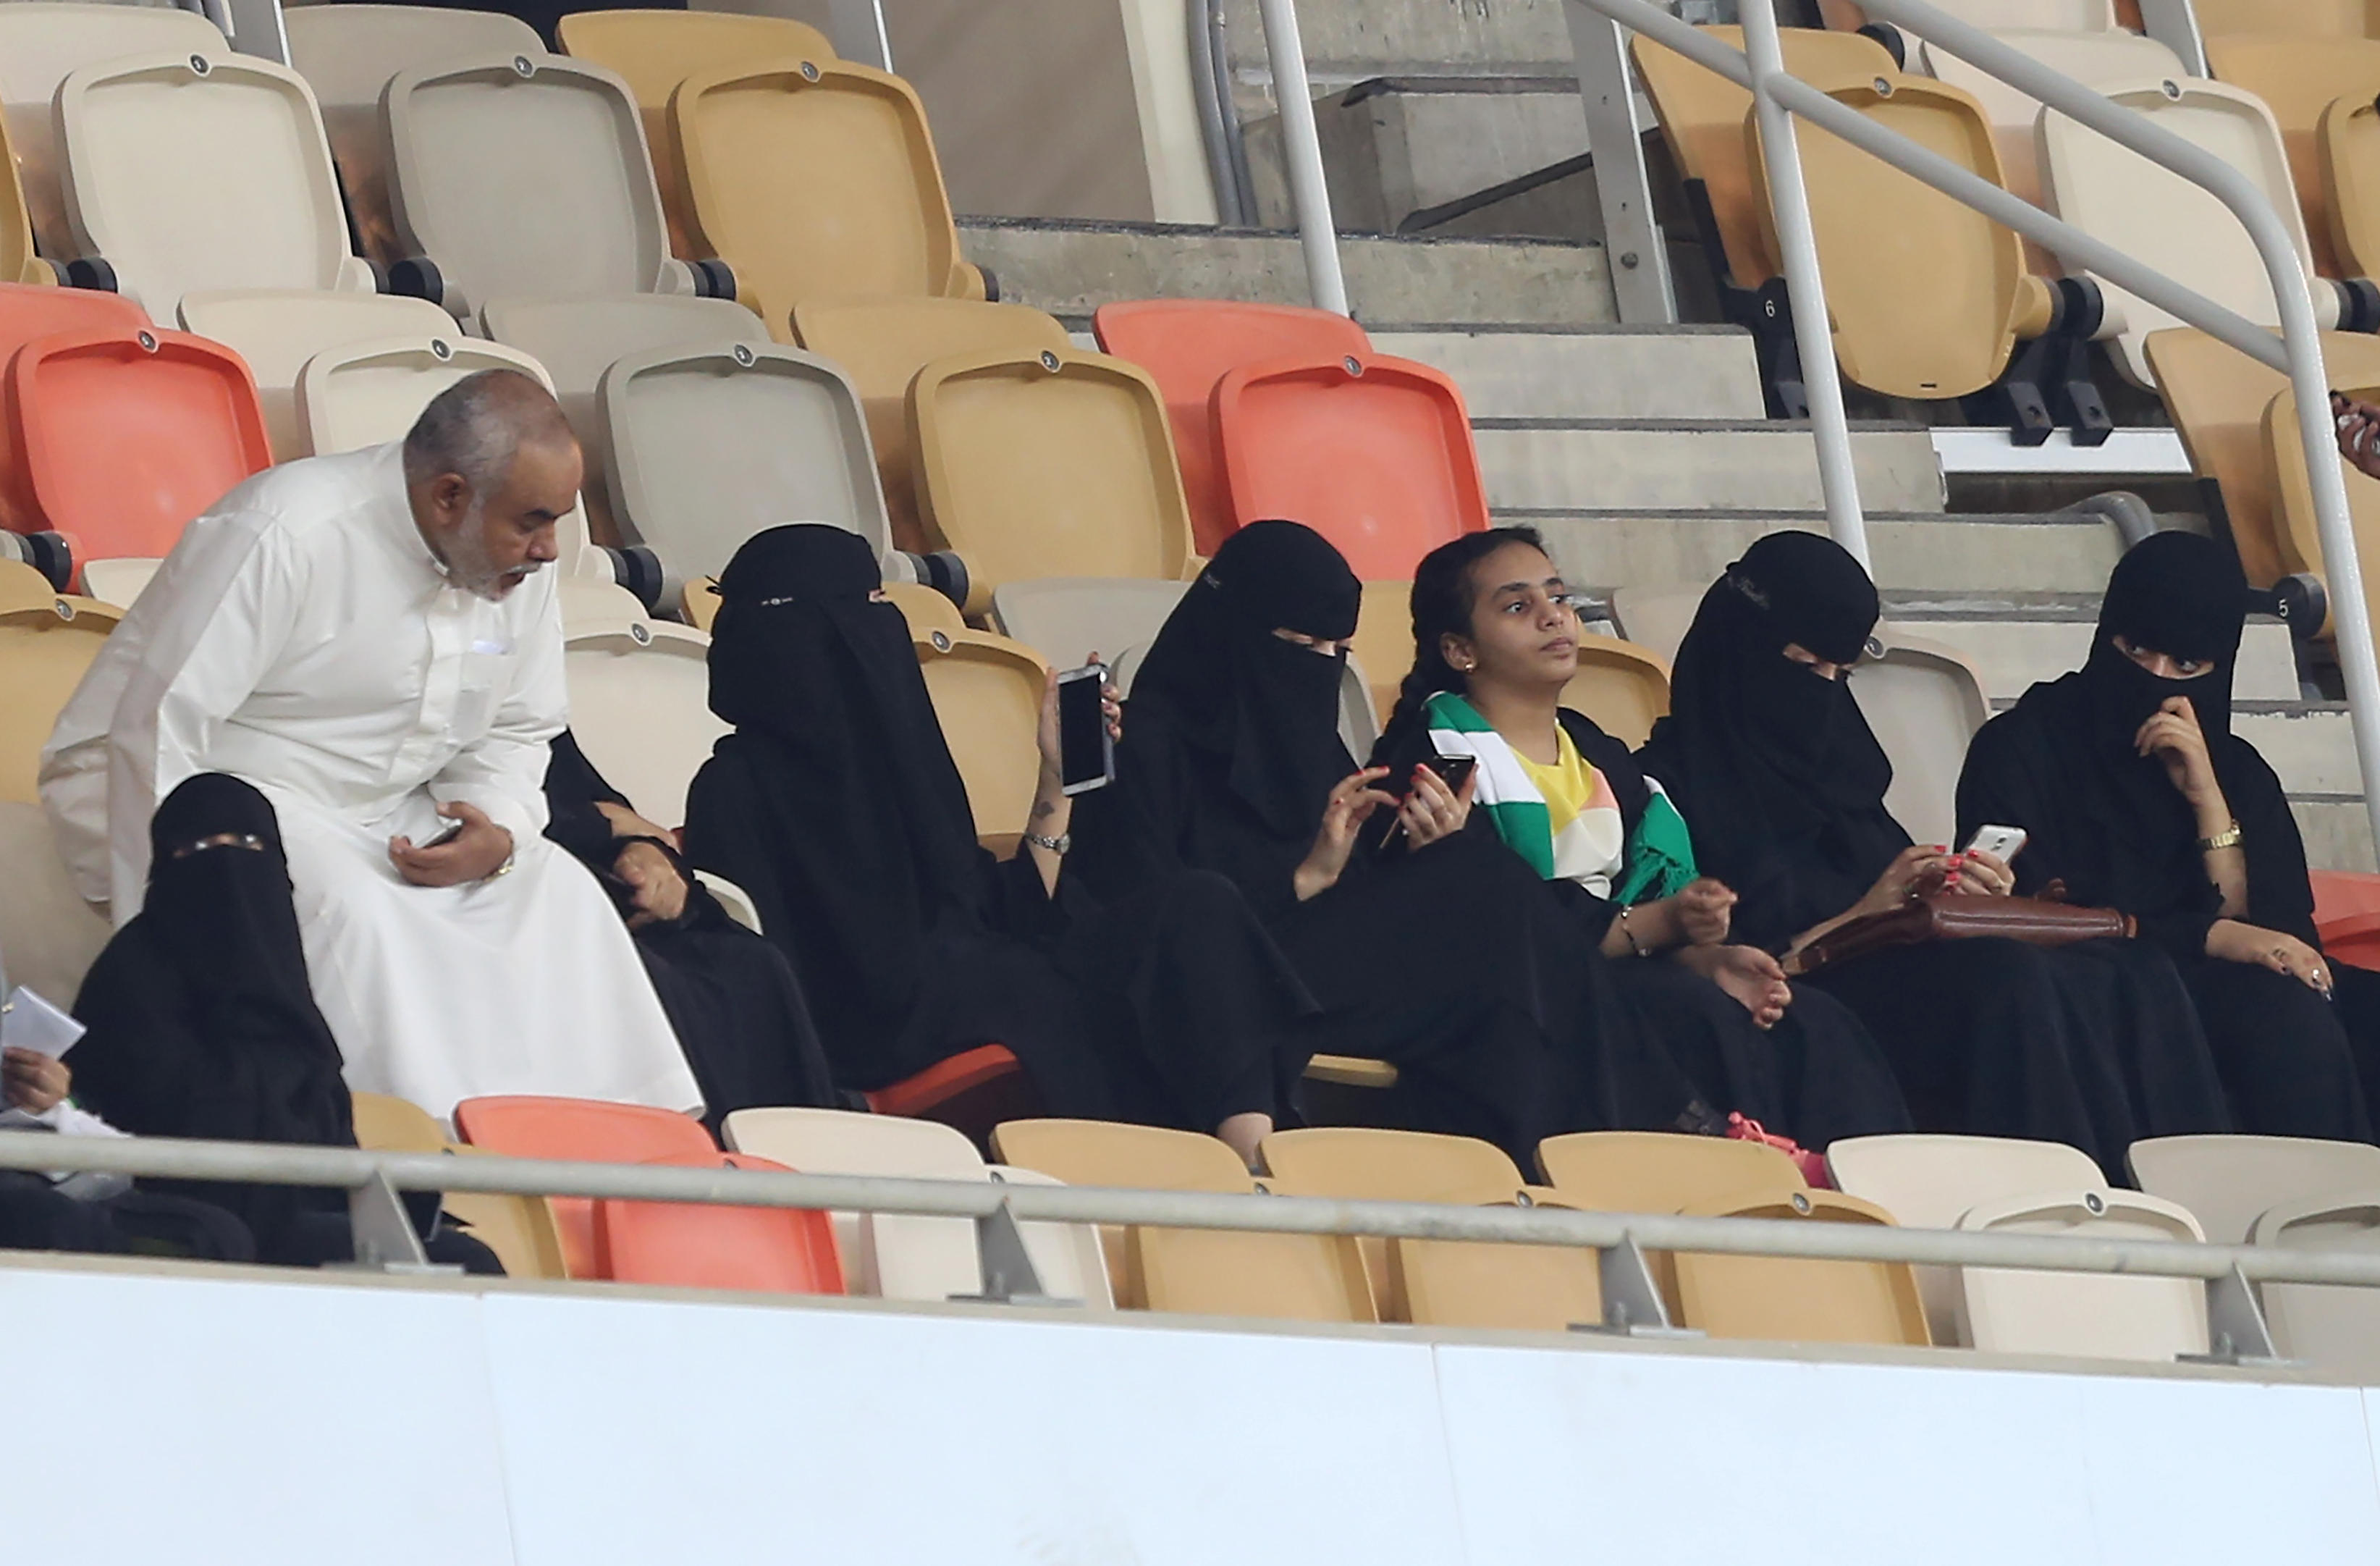 Saudi women allowed into stadiums for first time to watch